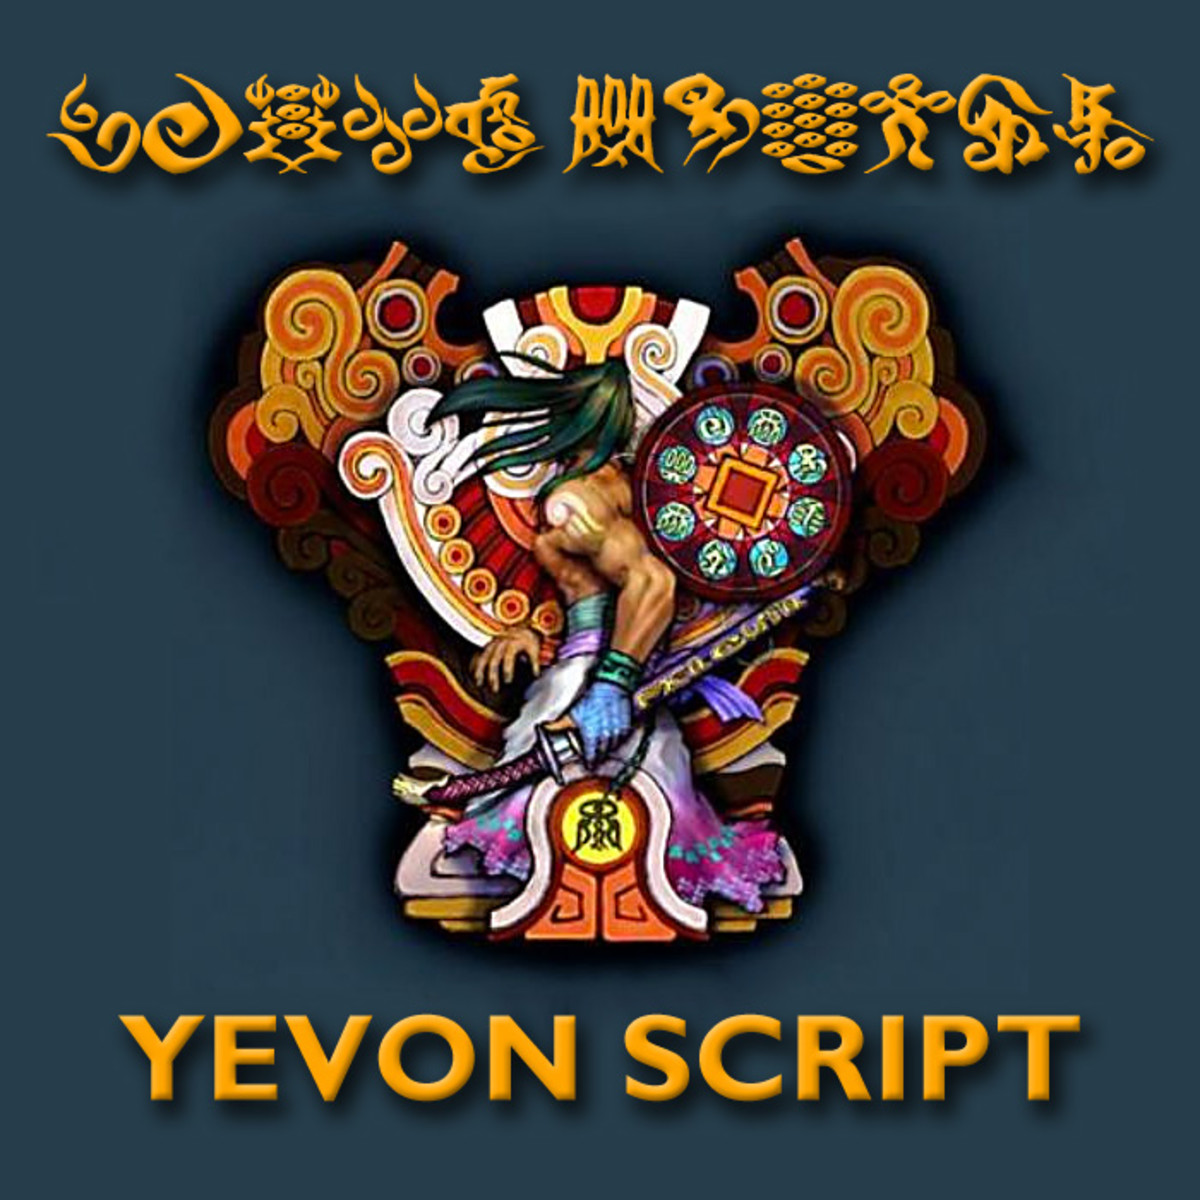 yevon-script-sacred-writing-in-ffx